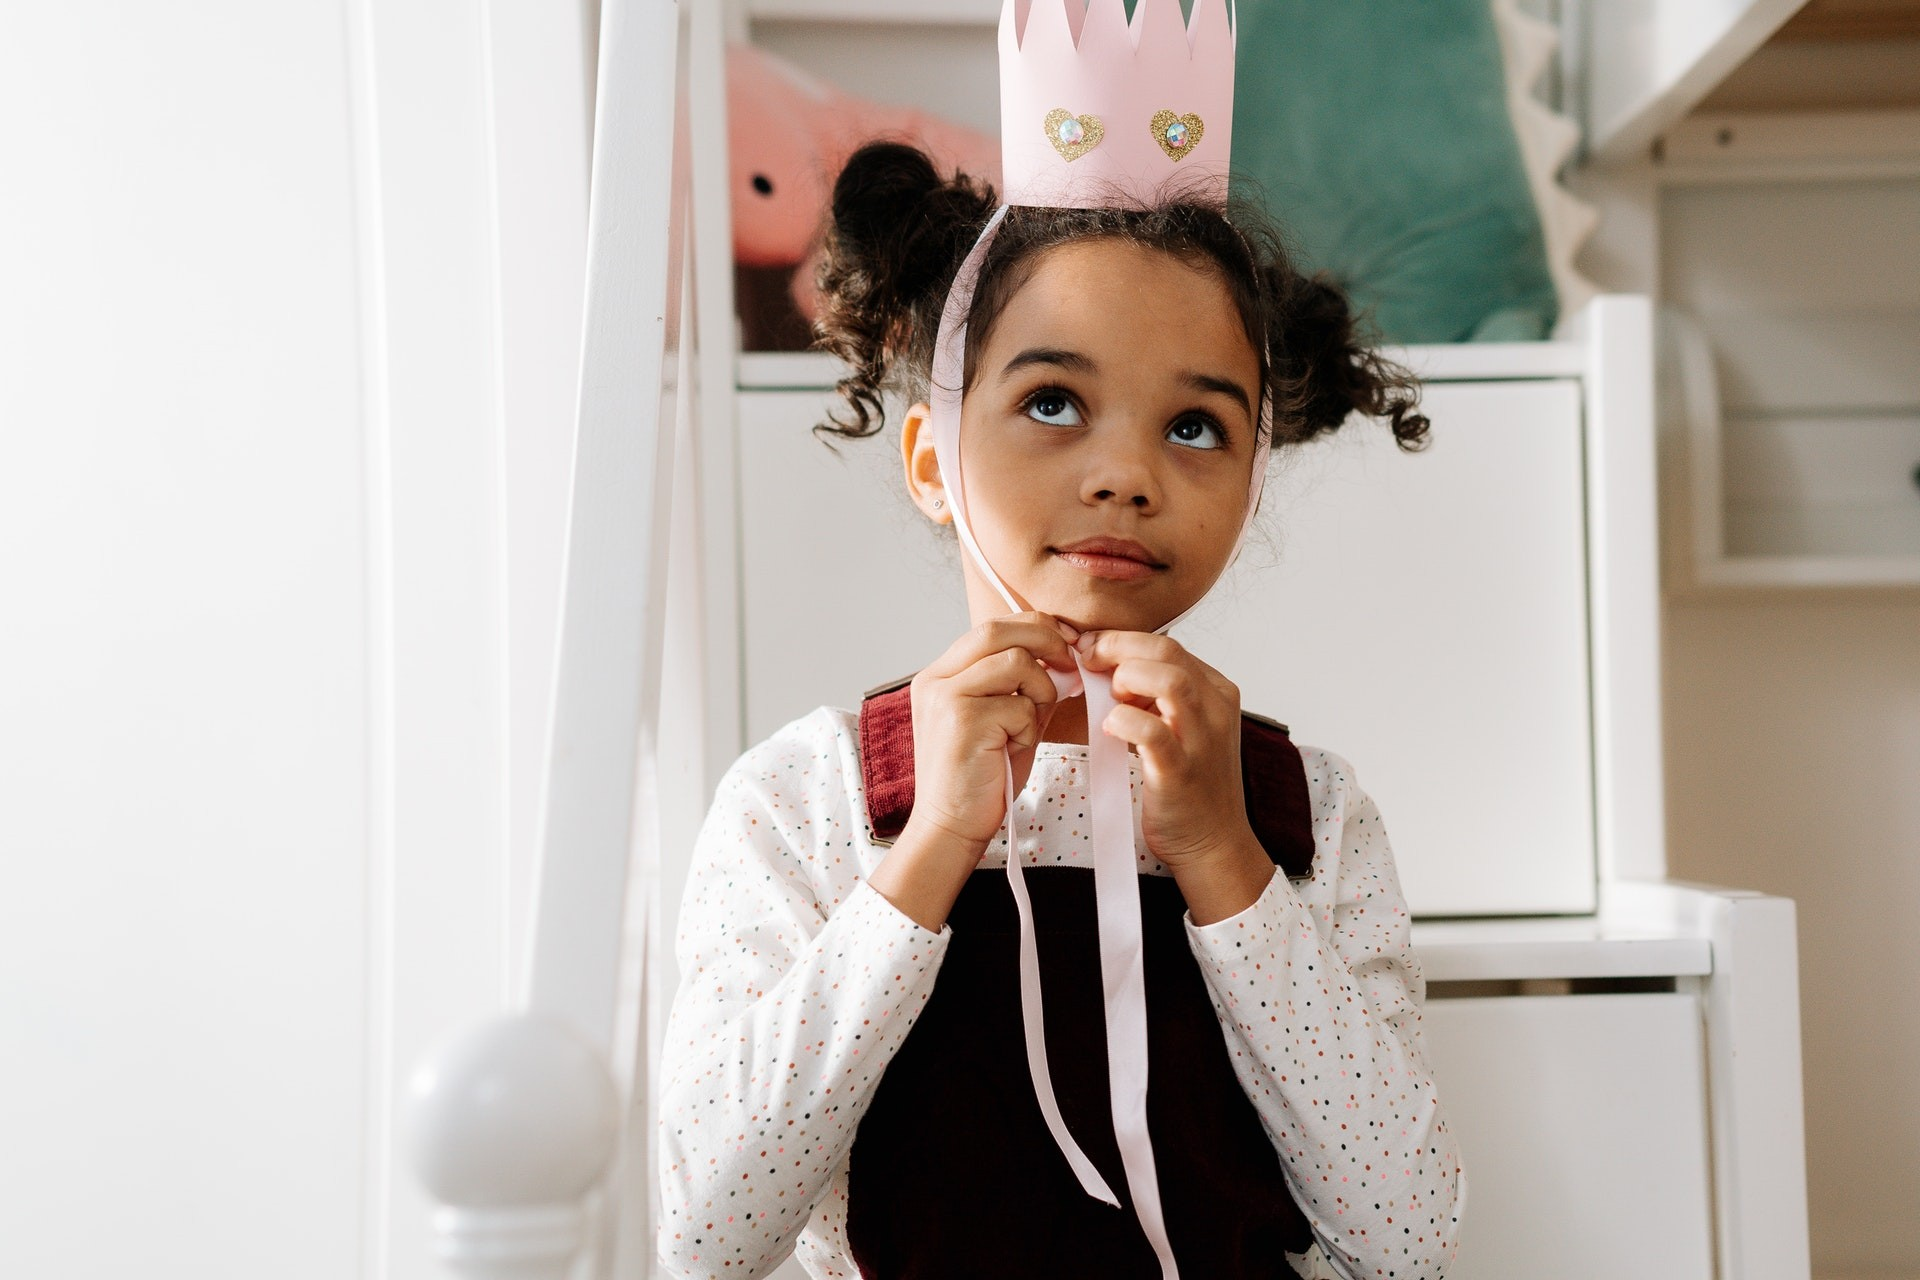 A young female kindergarten student plays dress up during play based learning activities.